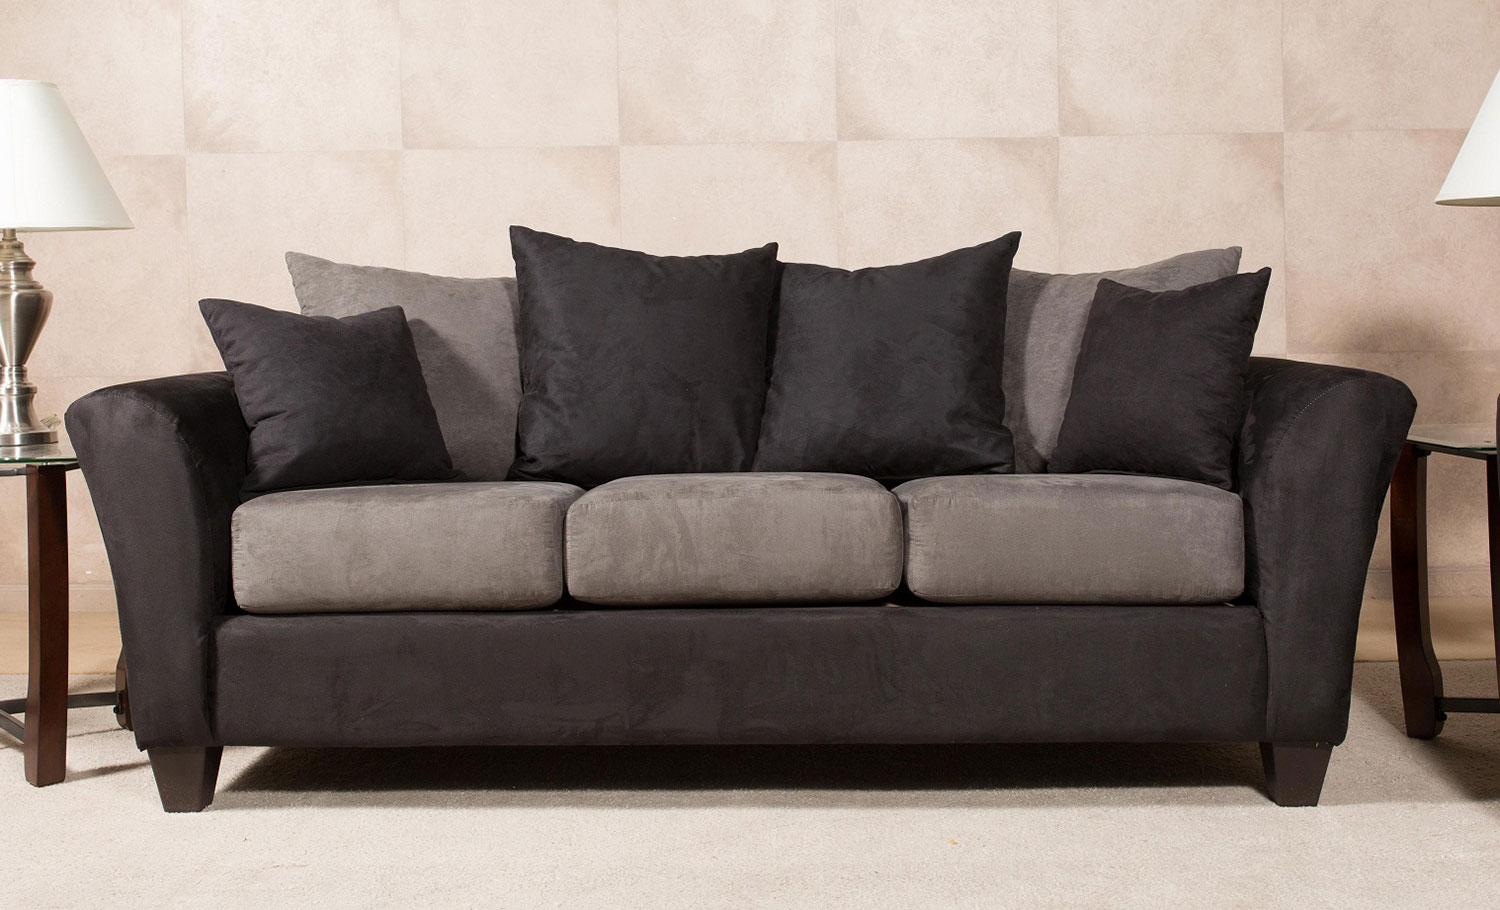 Chelsea Home Mansfield Sofa Black